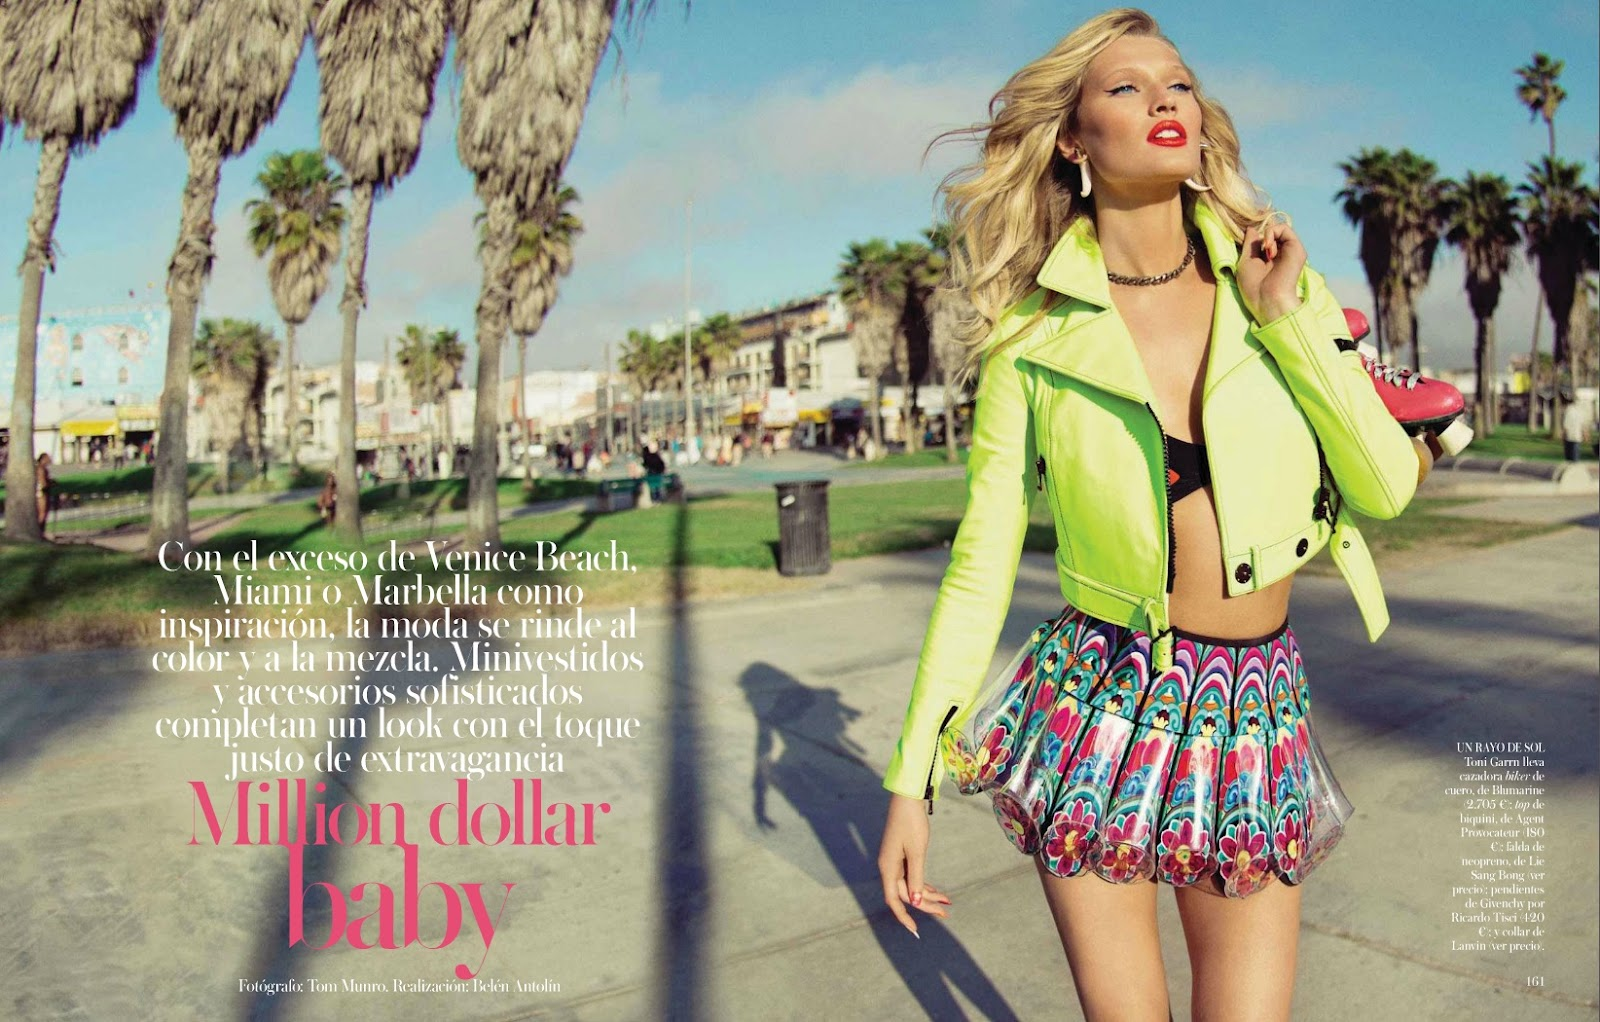 http://3.bp.blogspot.com/-Mh4n-JFUMlk/T9UkqxaFg5I/AAAAAAAAAk4/zL78FVwoB8w/s1600/la-modella-mafia-million-dollar-baby-Toni-Garrn-x-Vogue-Spain-June-2012-photographed-by-Tom-Munro-1.jpg